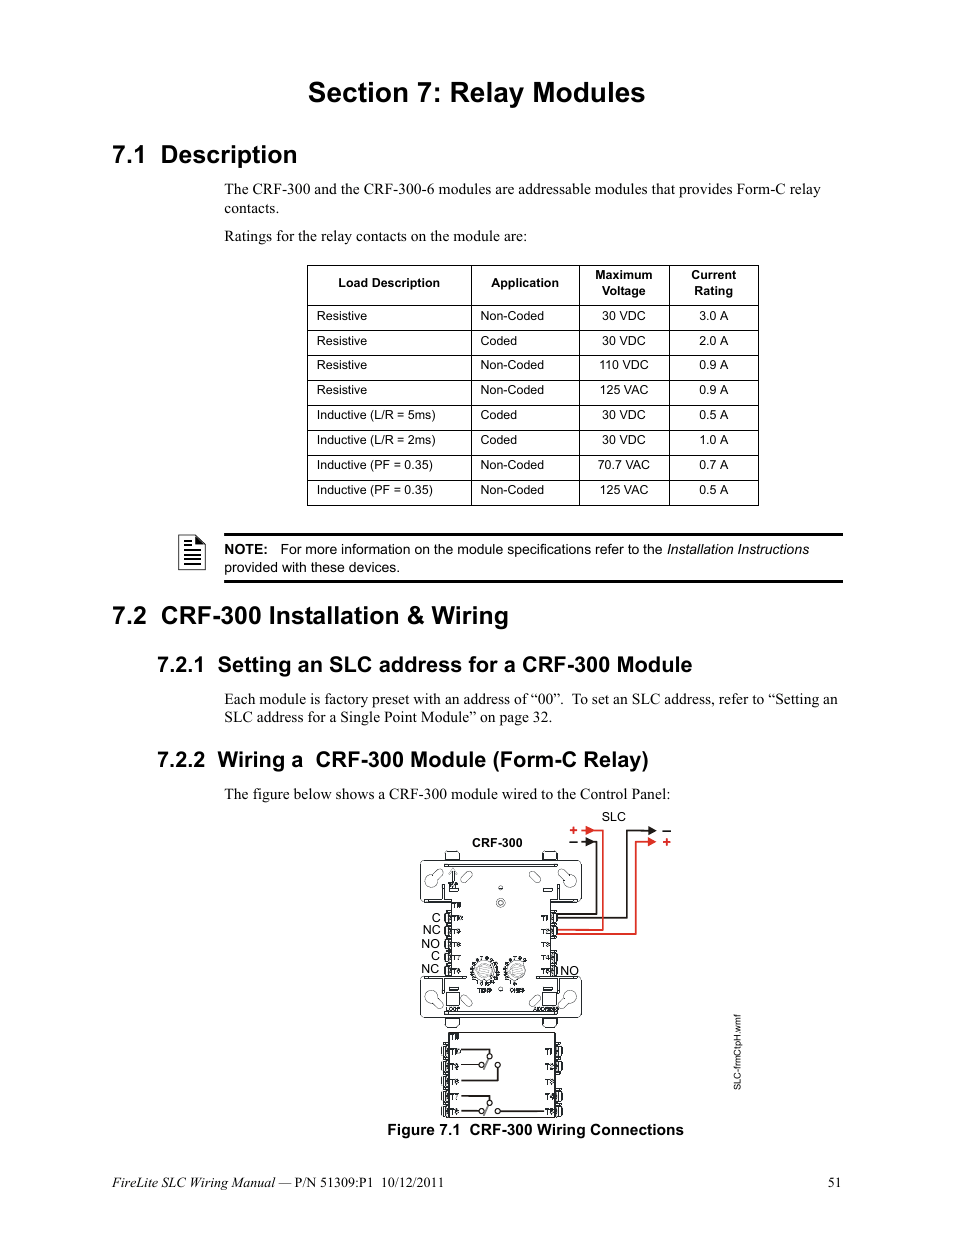 medium resolution of section 7 relay modules 1 description 2 crf 300 installation wiring fire lite slc intelligent control panel wiring manual user manual page 51 80